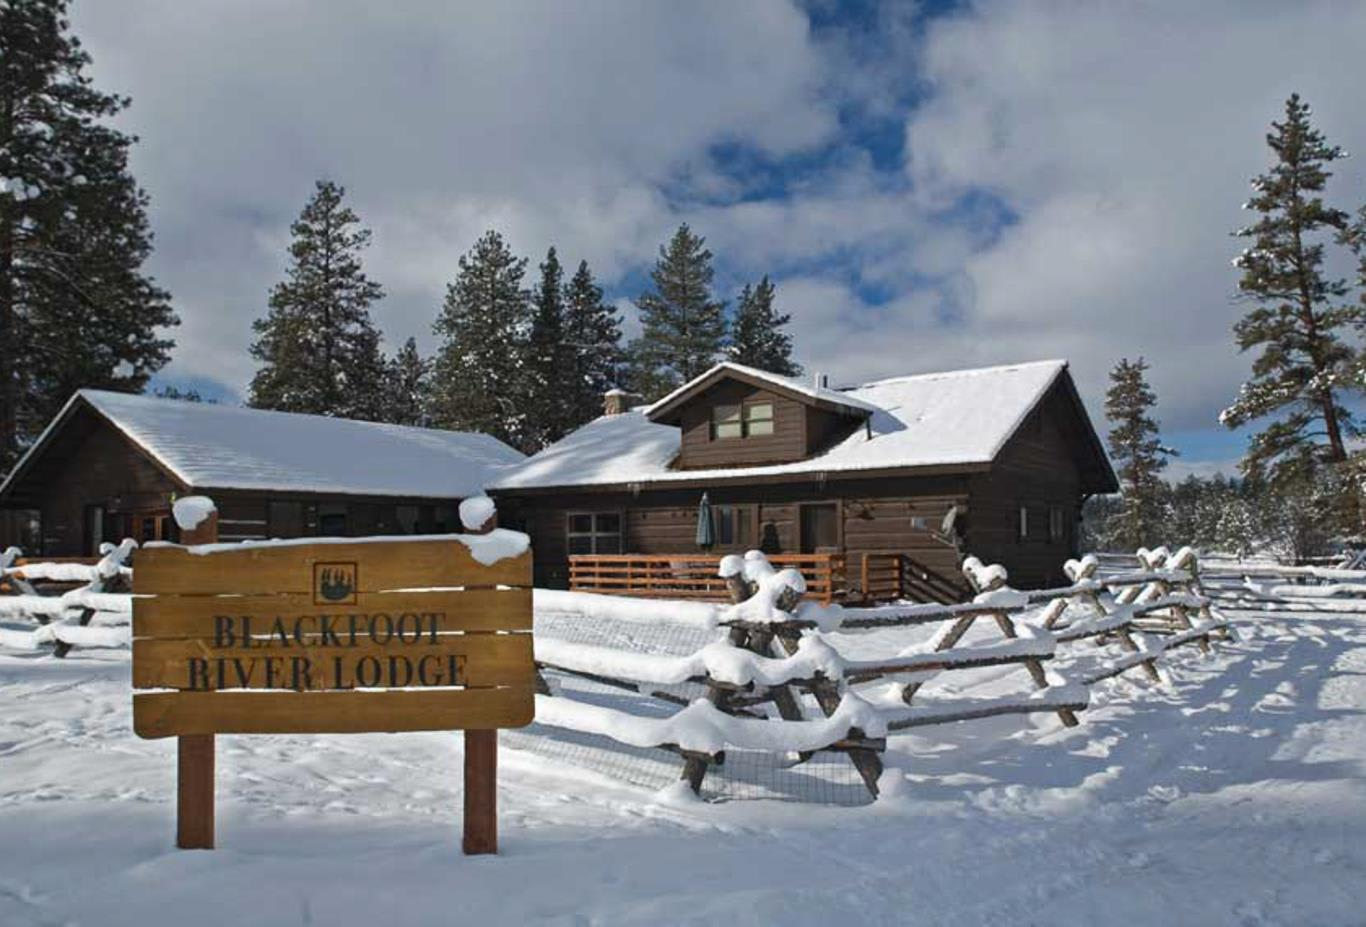 The Blackfoot River Lodge - Exterior in winter